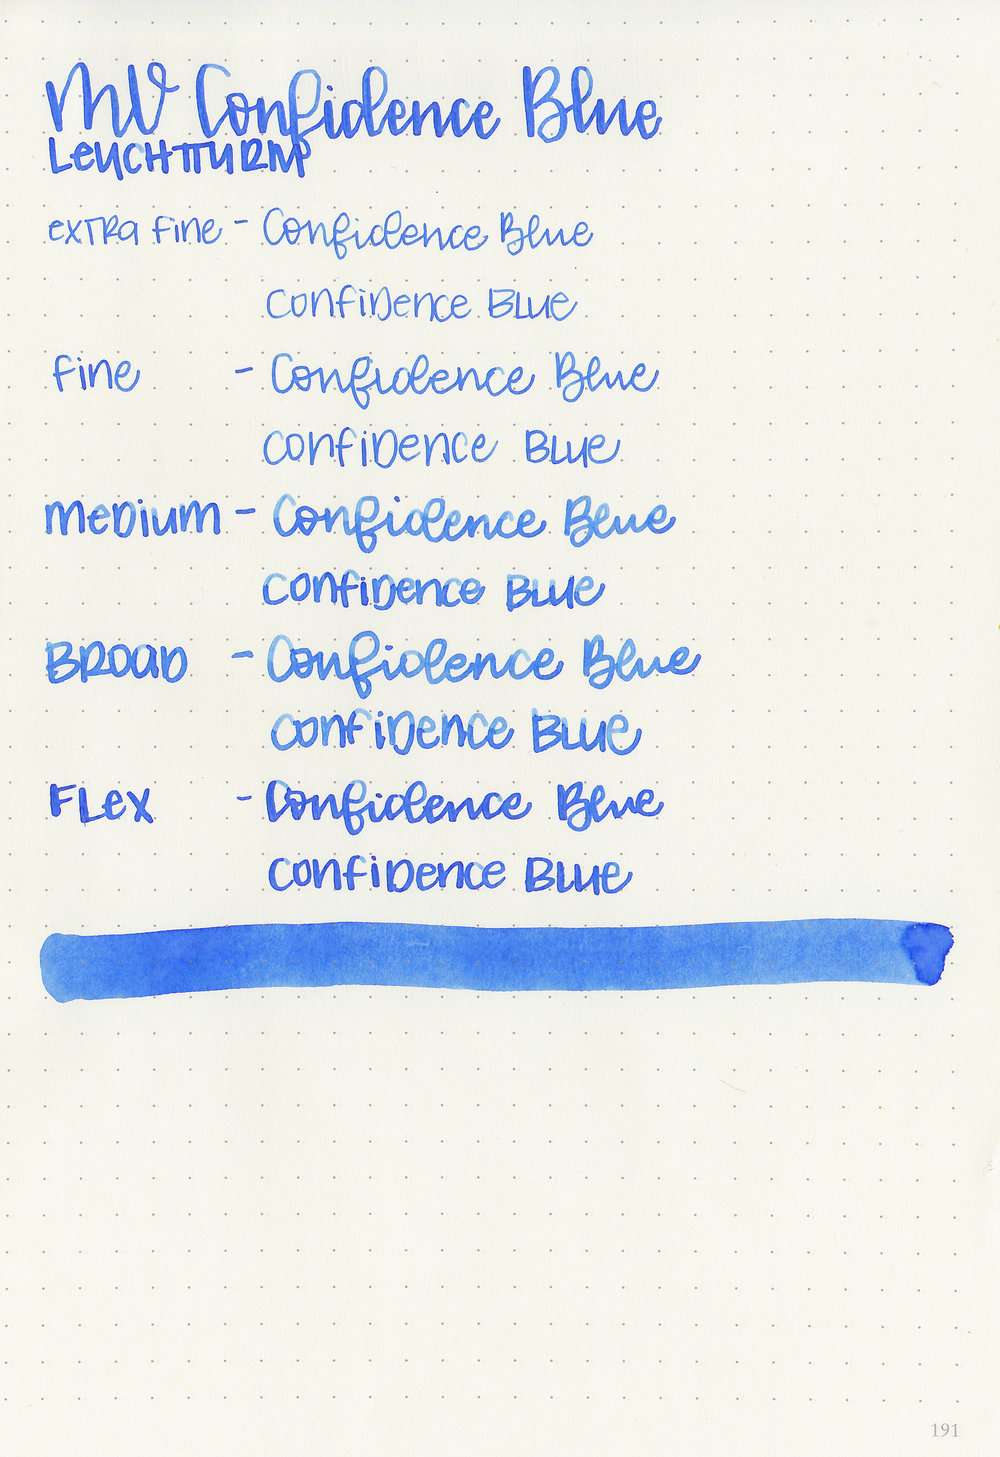 mv-confidence-blue-9.jpg